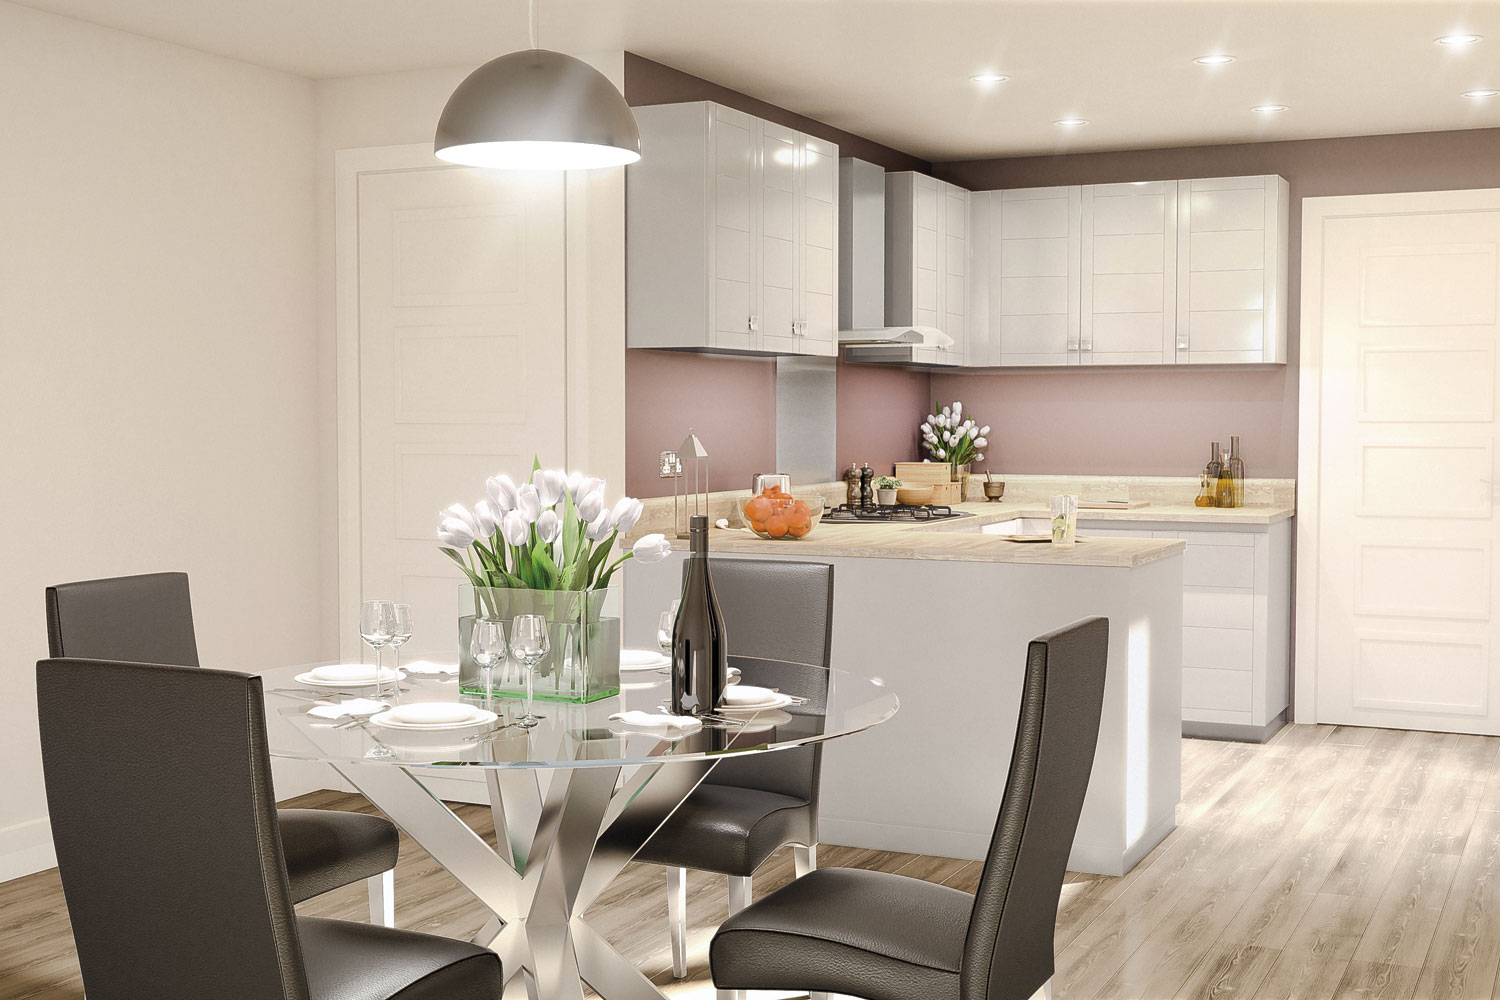 MOH9752_TheHeights_Interior_5.jpg